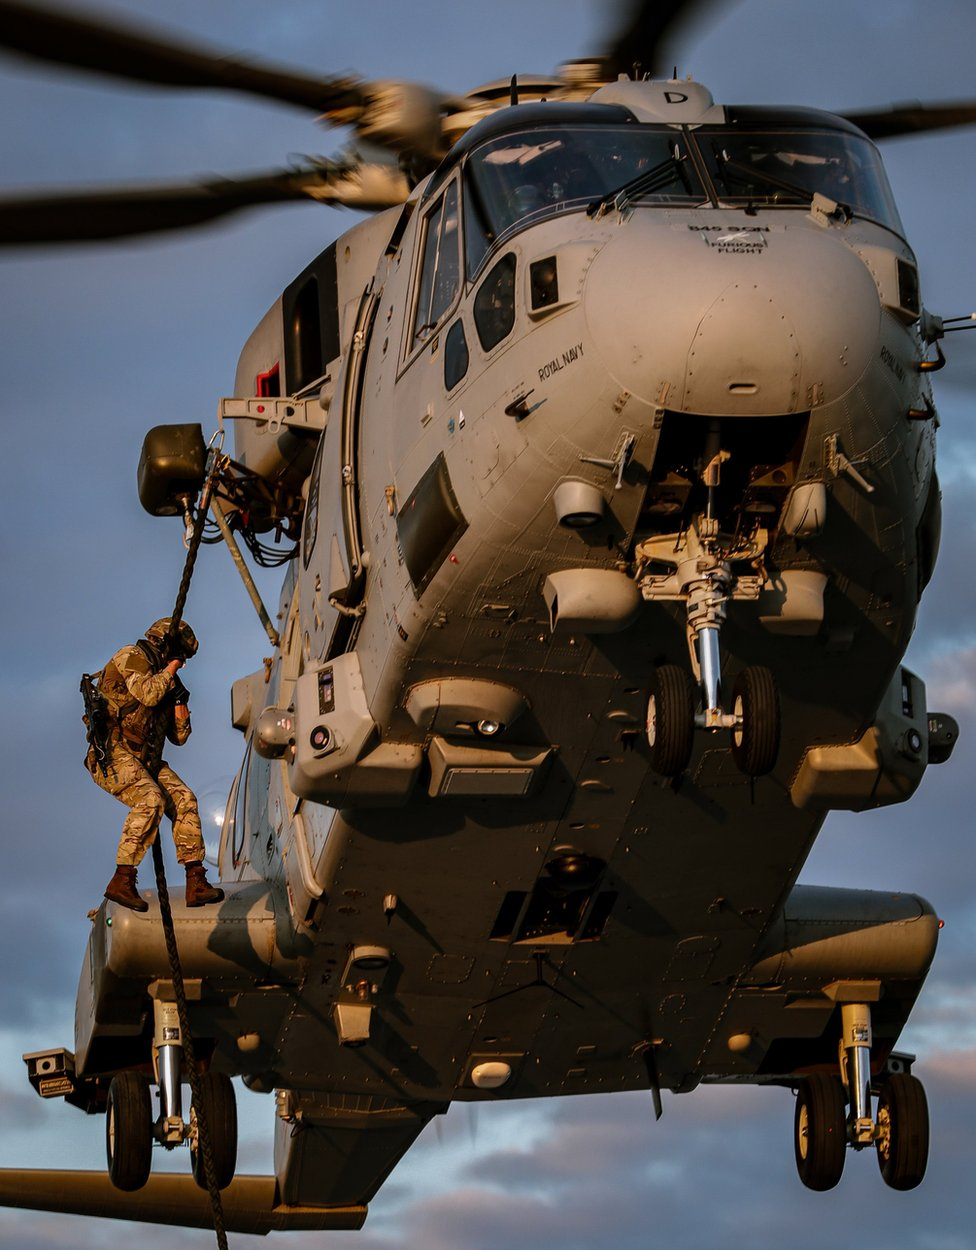 A Royal Marine dangles from a helicopter from a rope